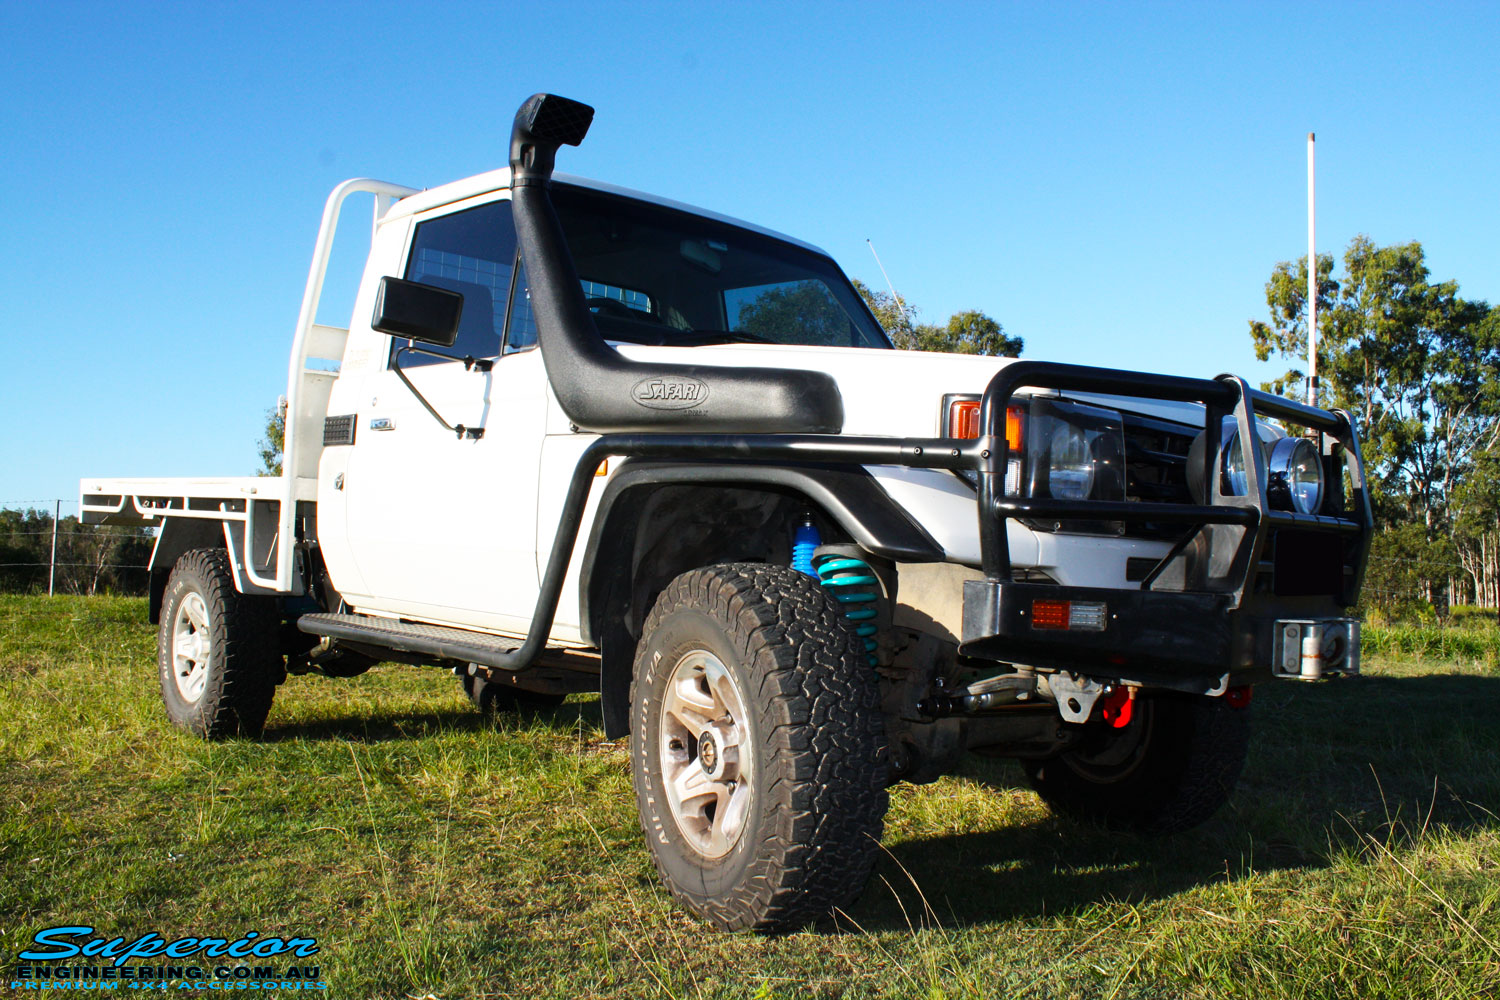 """Right front side view of a Toyota Landcruiser 79 Series after fitting a Superior Coil Conversion 2"""" Inch Stage 4 Full Front & Rear Kit + Airbag Man Coil Air Kit Helper, Superior Steering Damper, Tie Rod, Heavy Tow Points & Solid Drag Link Bar"""